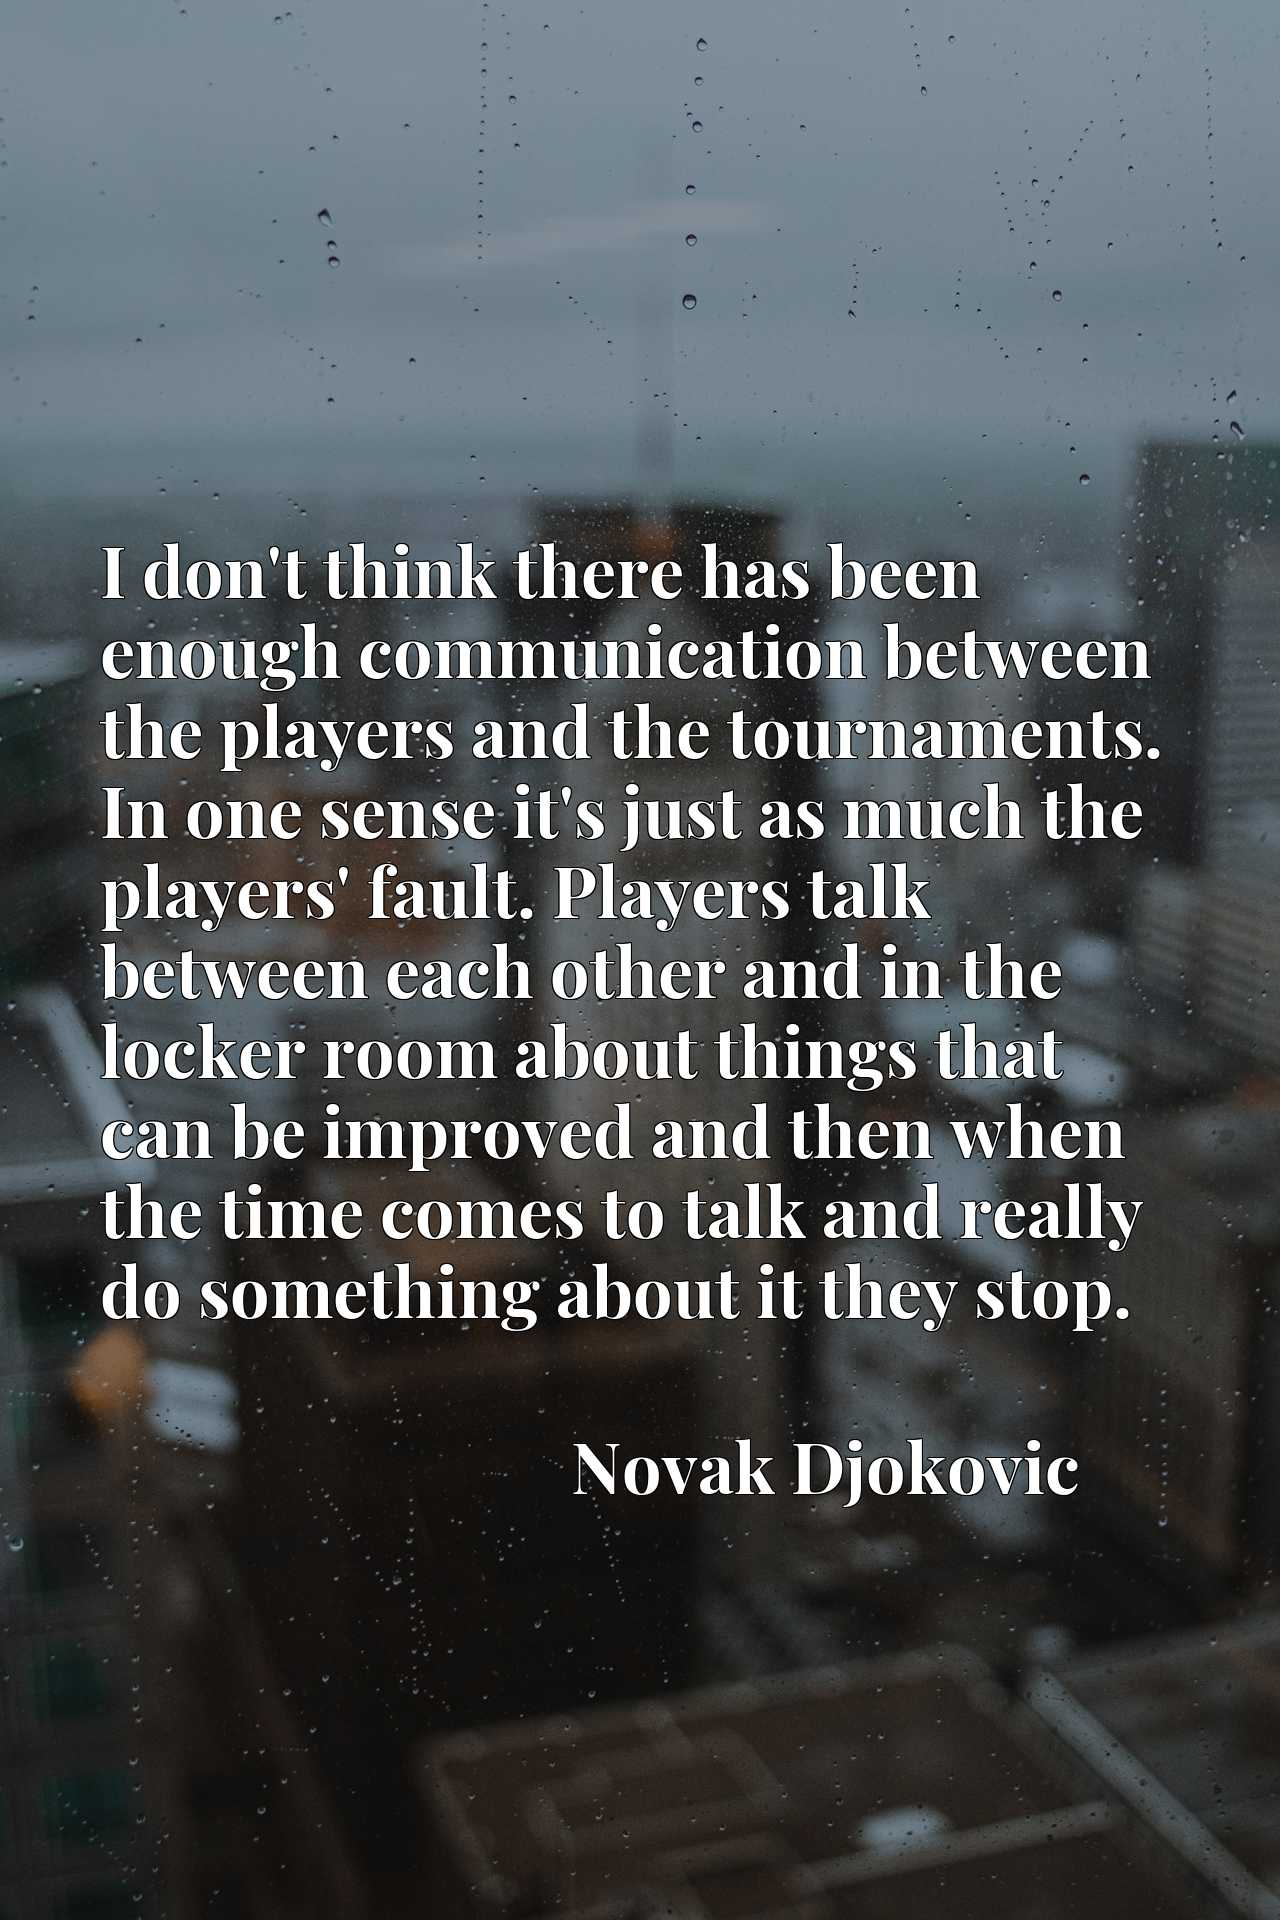 I don't think there has been enough communication between the players and the tournaments. In one sense it's just as much the players' fault. Players talk between each other and in the locker room about things that can be improved and then when the time comes to talk and really do something about it they stop.